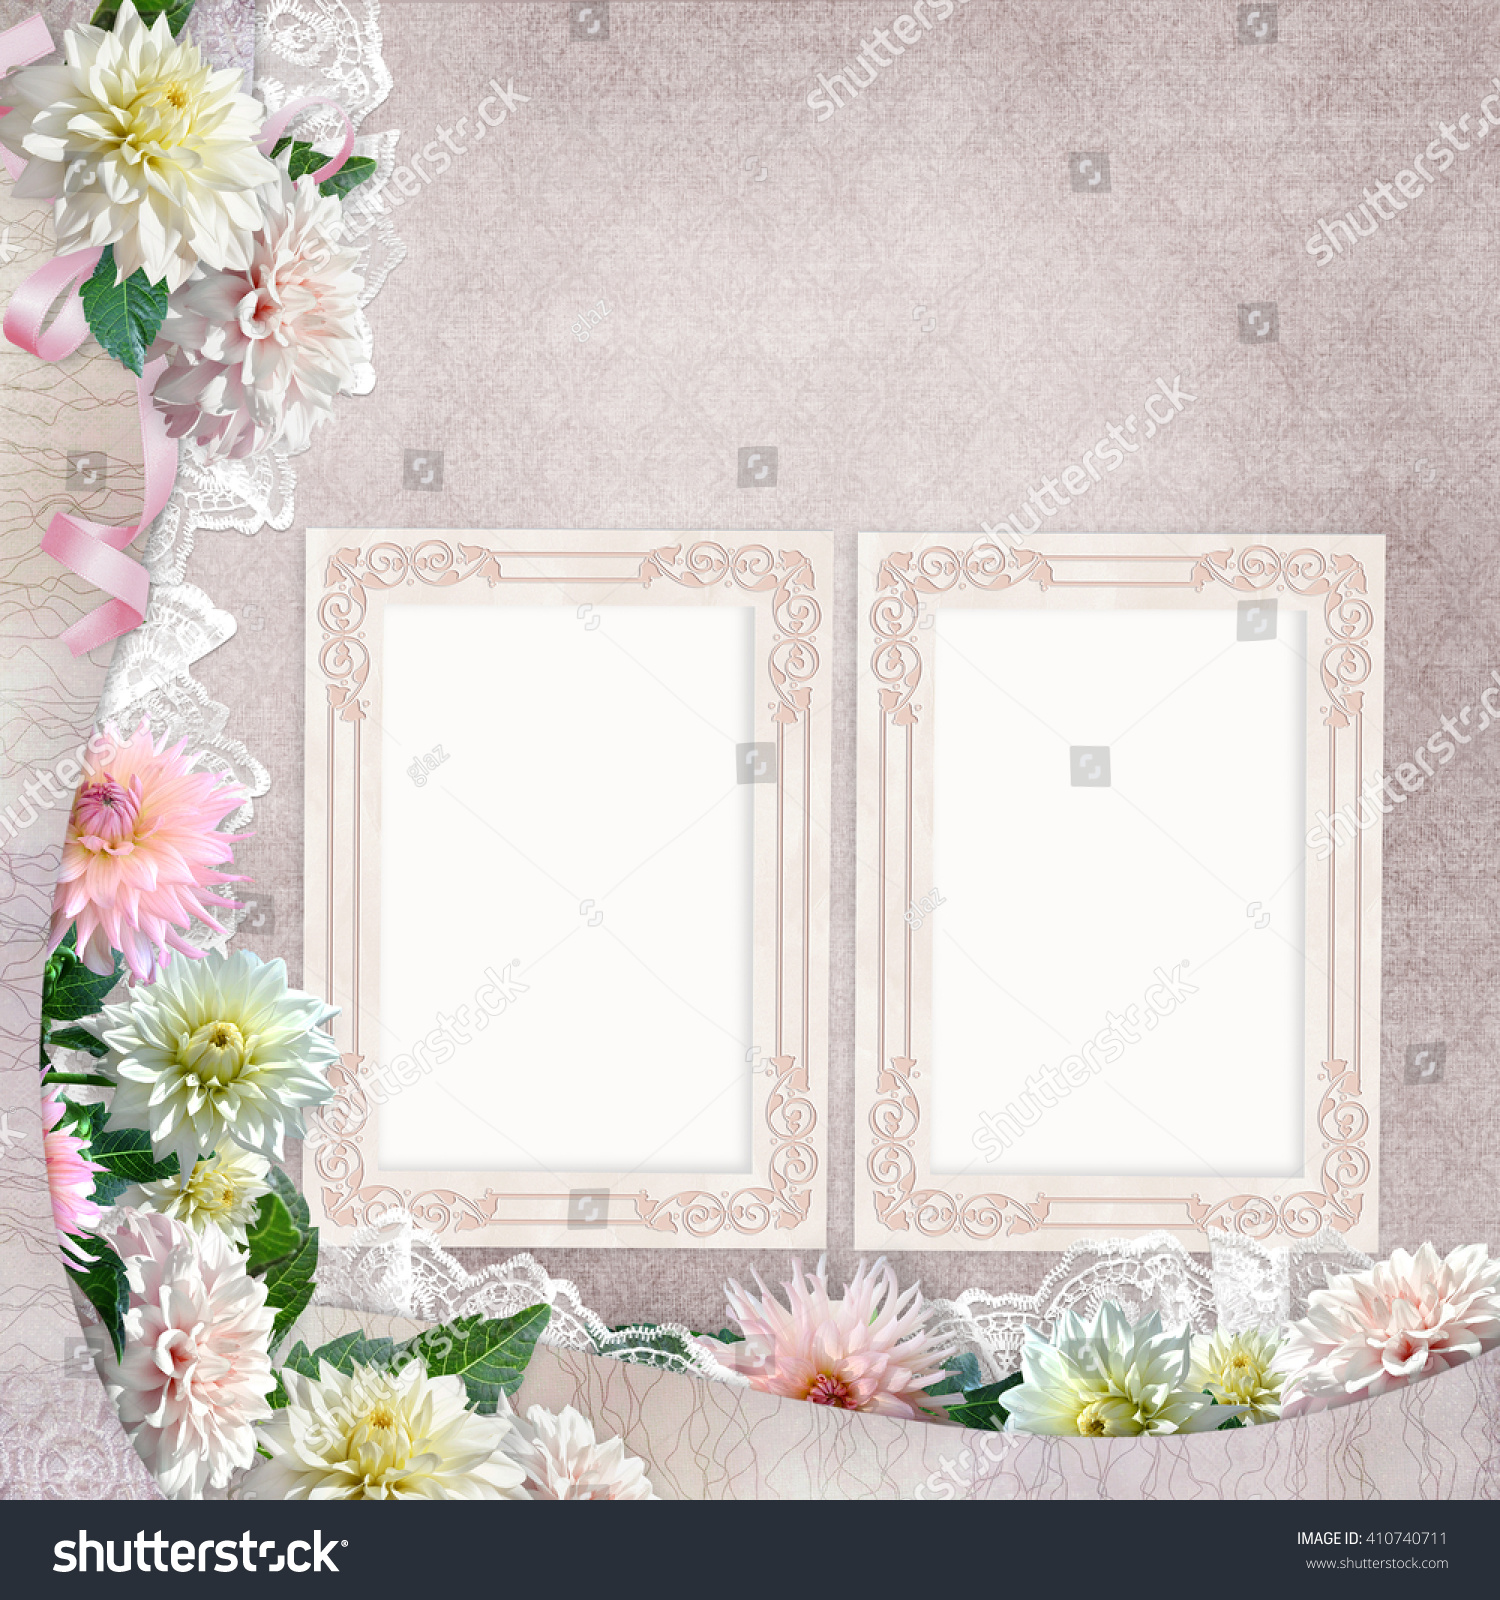 Beautiful borders flowers lace frames on stock photo 100 legal beautiful borders with flowers lace and frames on the vintage background izmirmasajfo